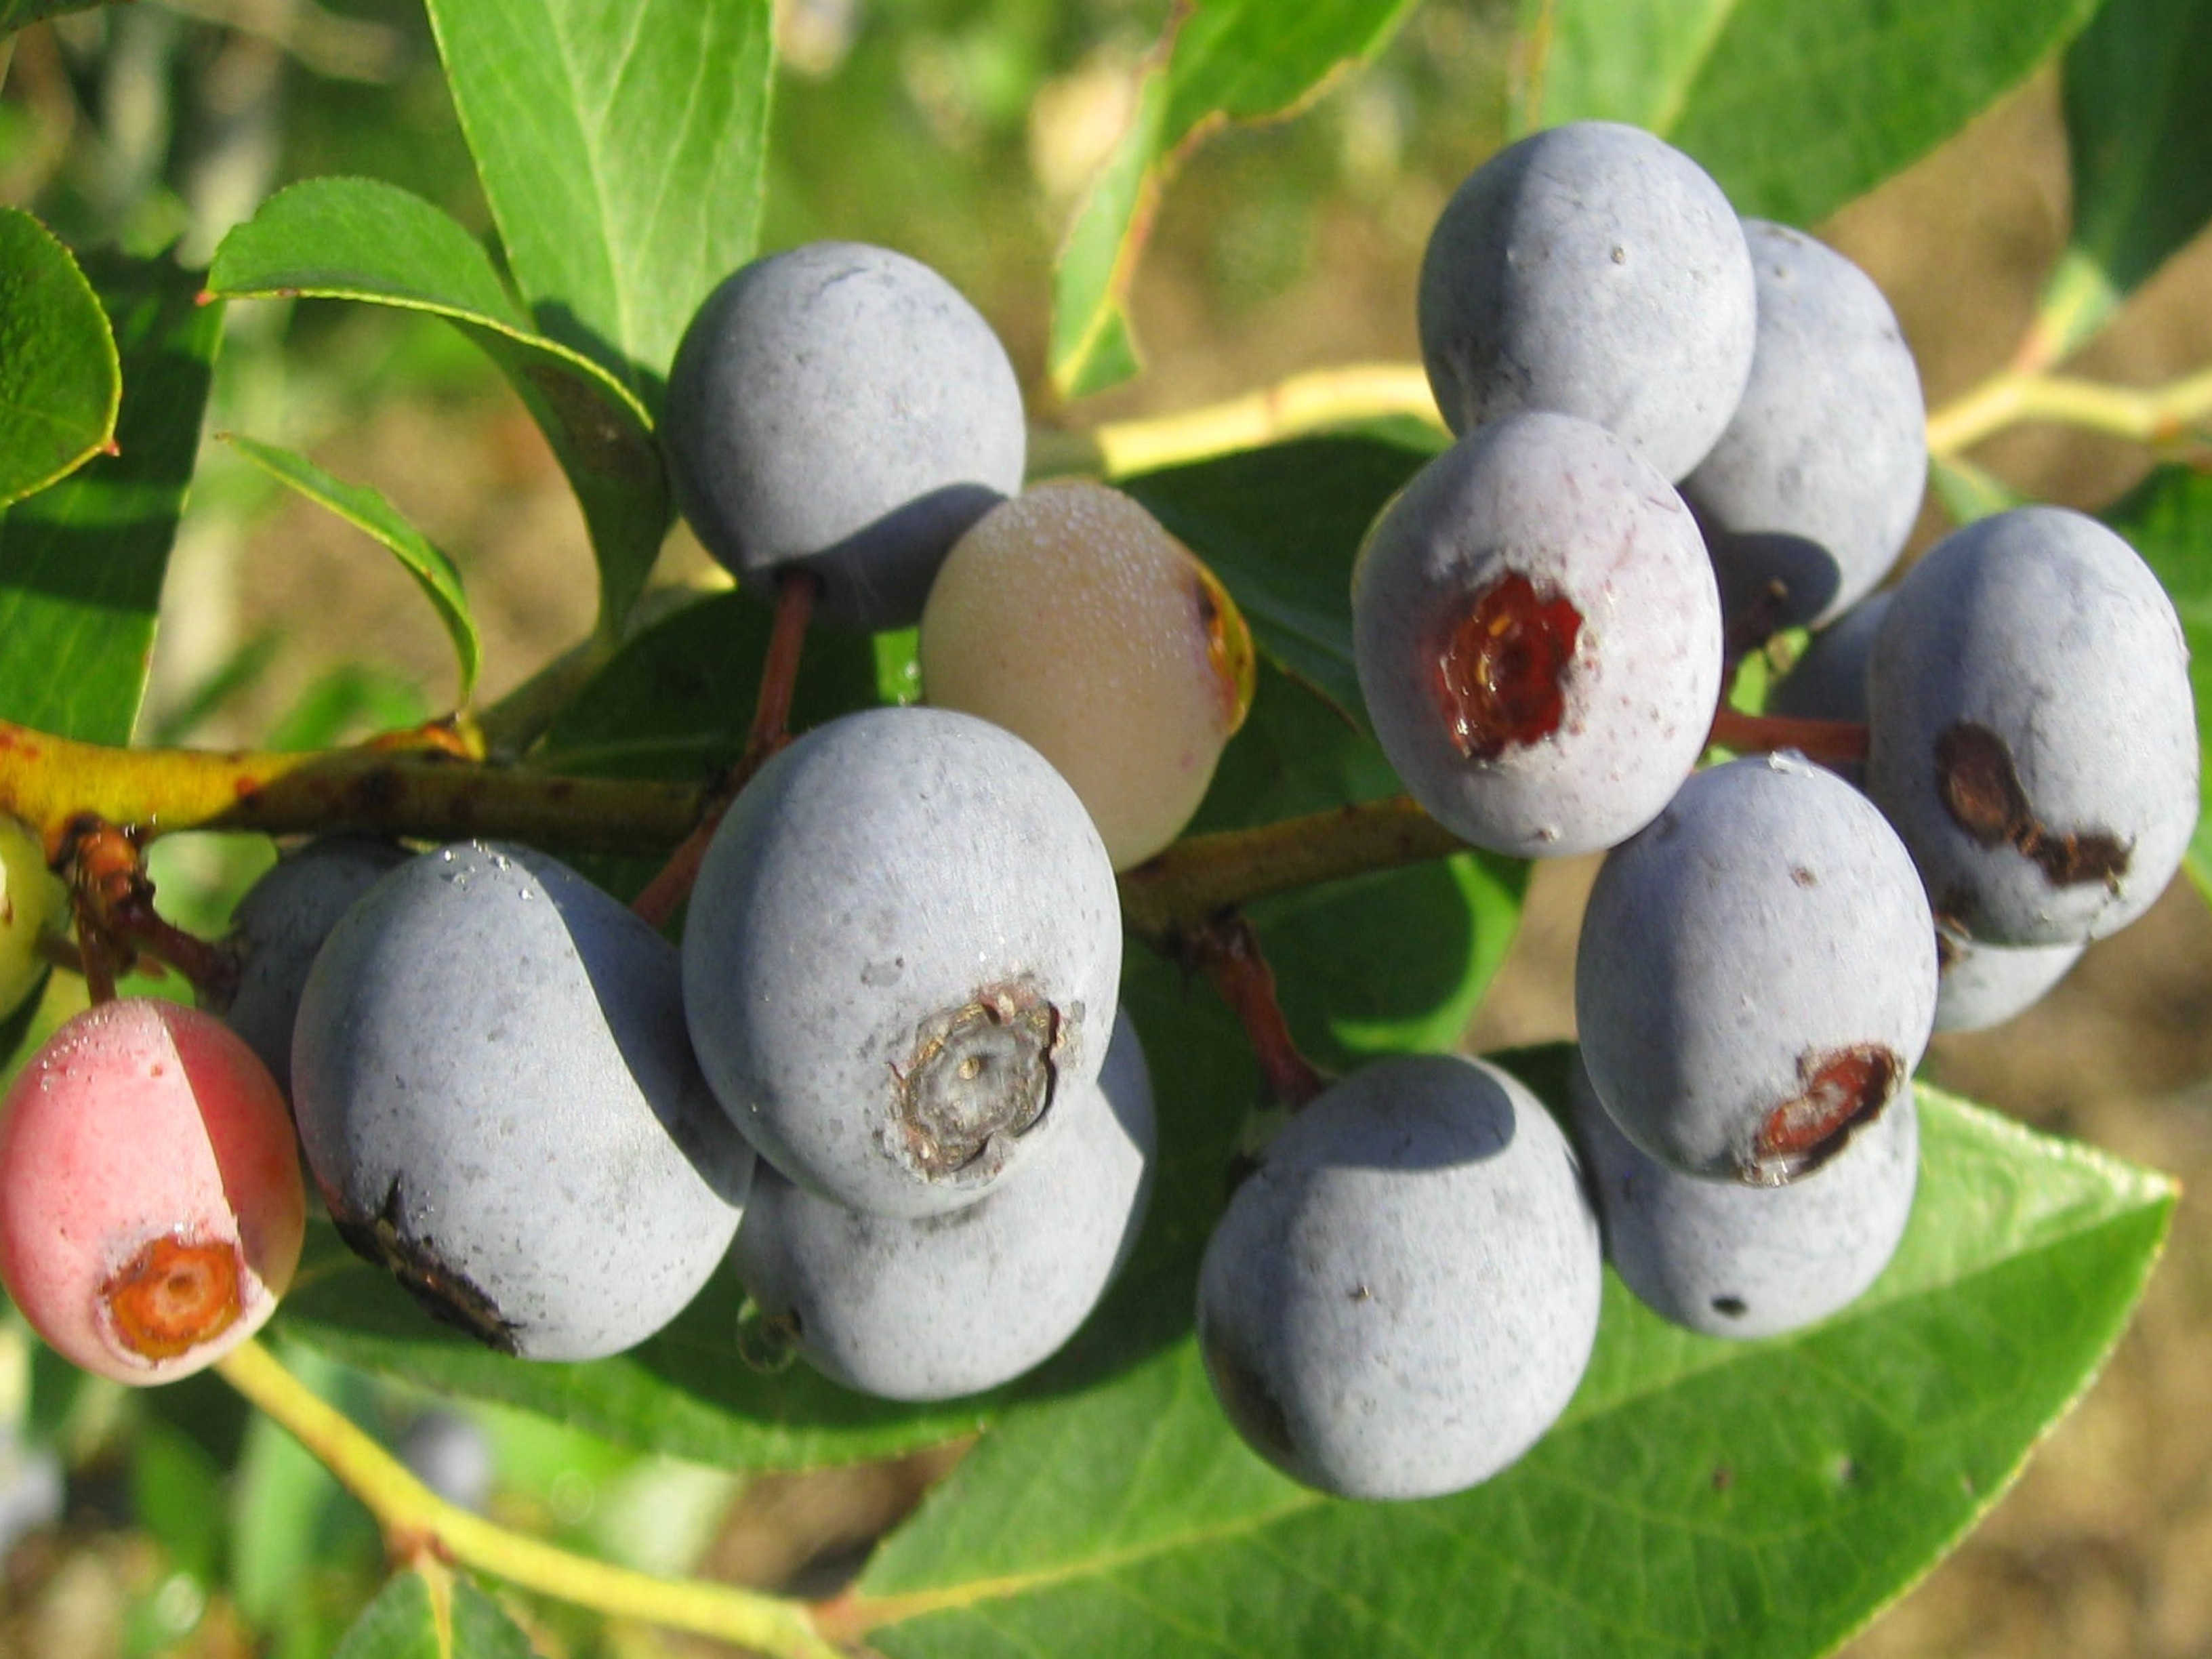 Rabbiteye blueberries are Louisiana Super Plants